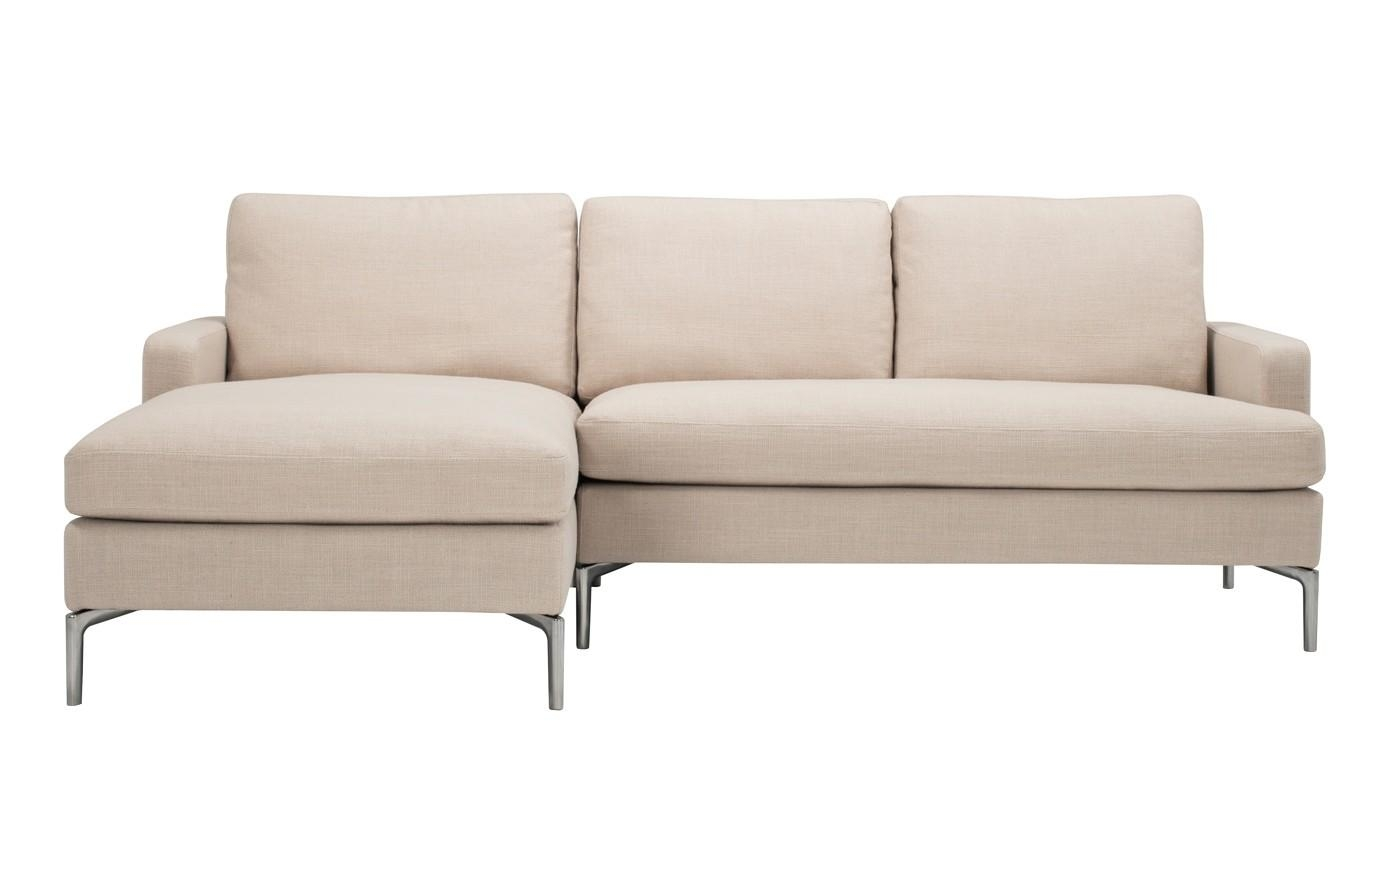 Eve Fabric 2 Piece Sectional Sofa With Chaise | Viesso Pertaining To Sectional Sofa With 2 Chaises (View 12 of 20)